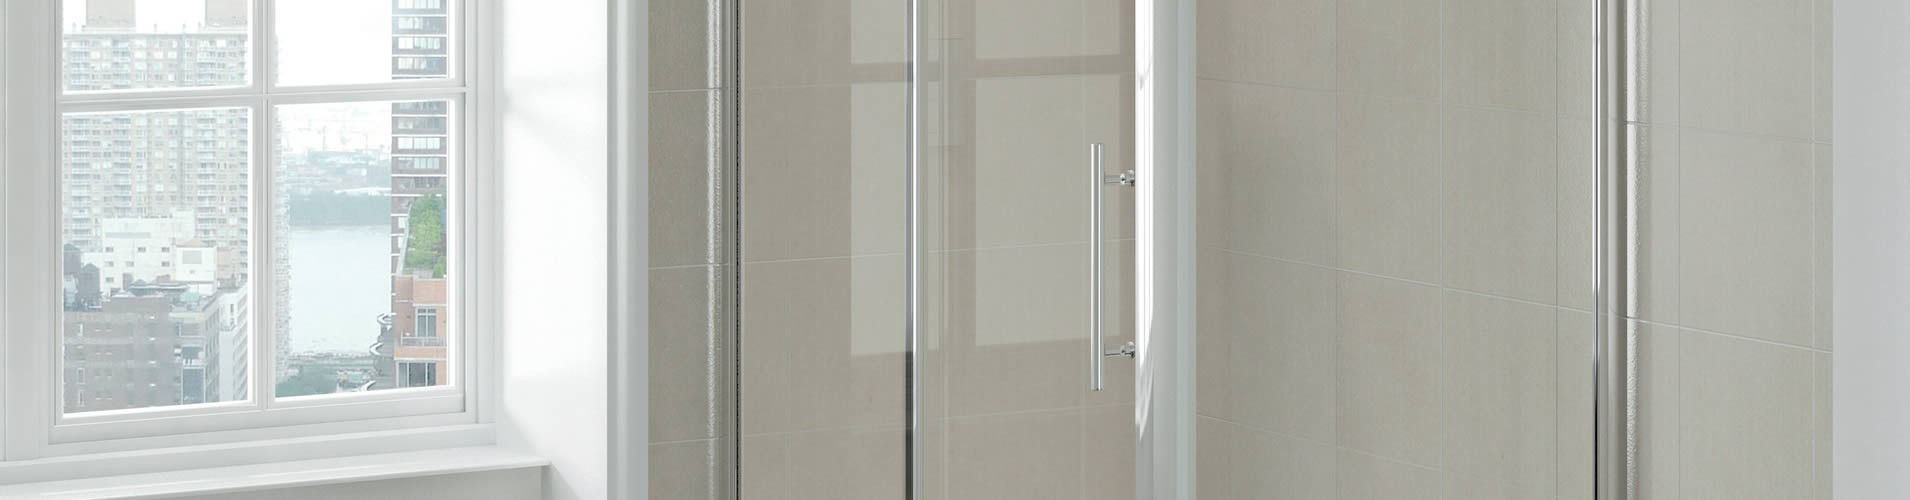 Framed Glass Shower Doors - Atlanta, Georgia